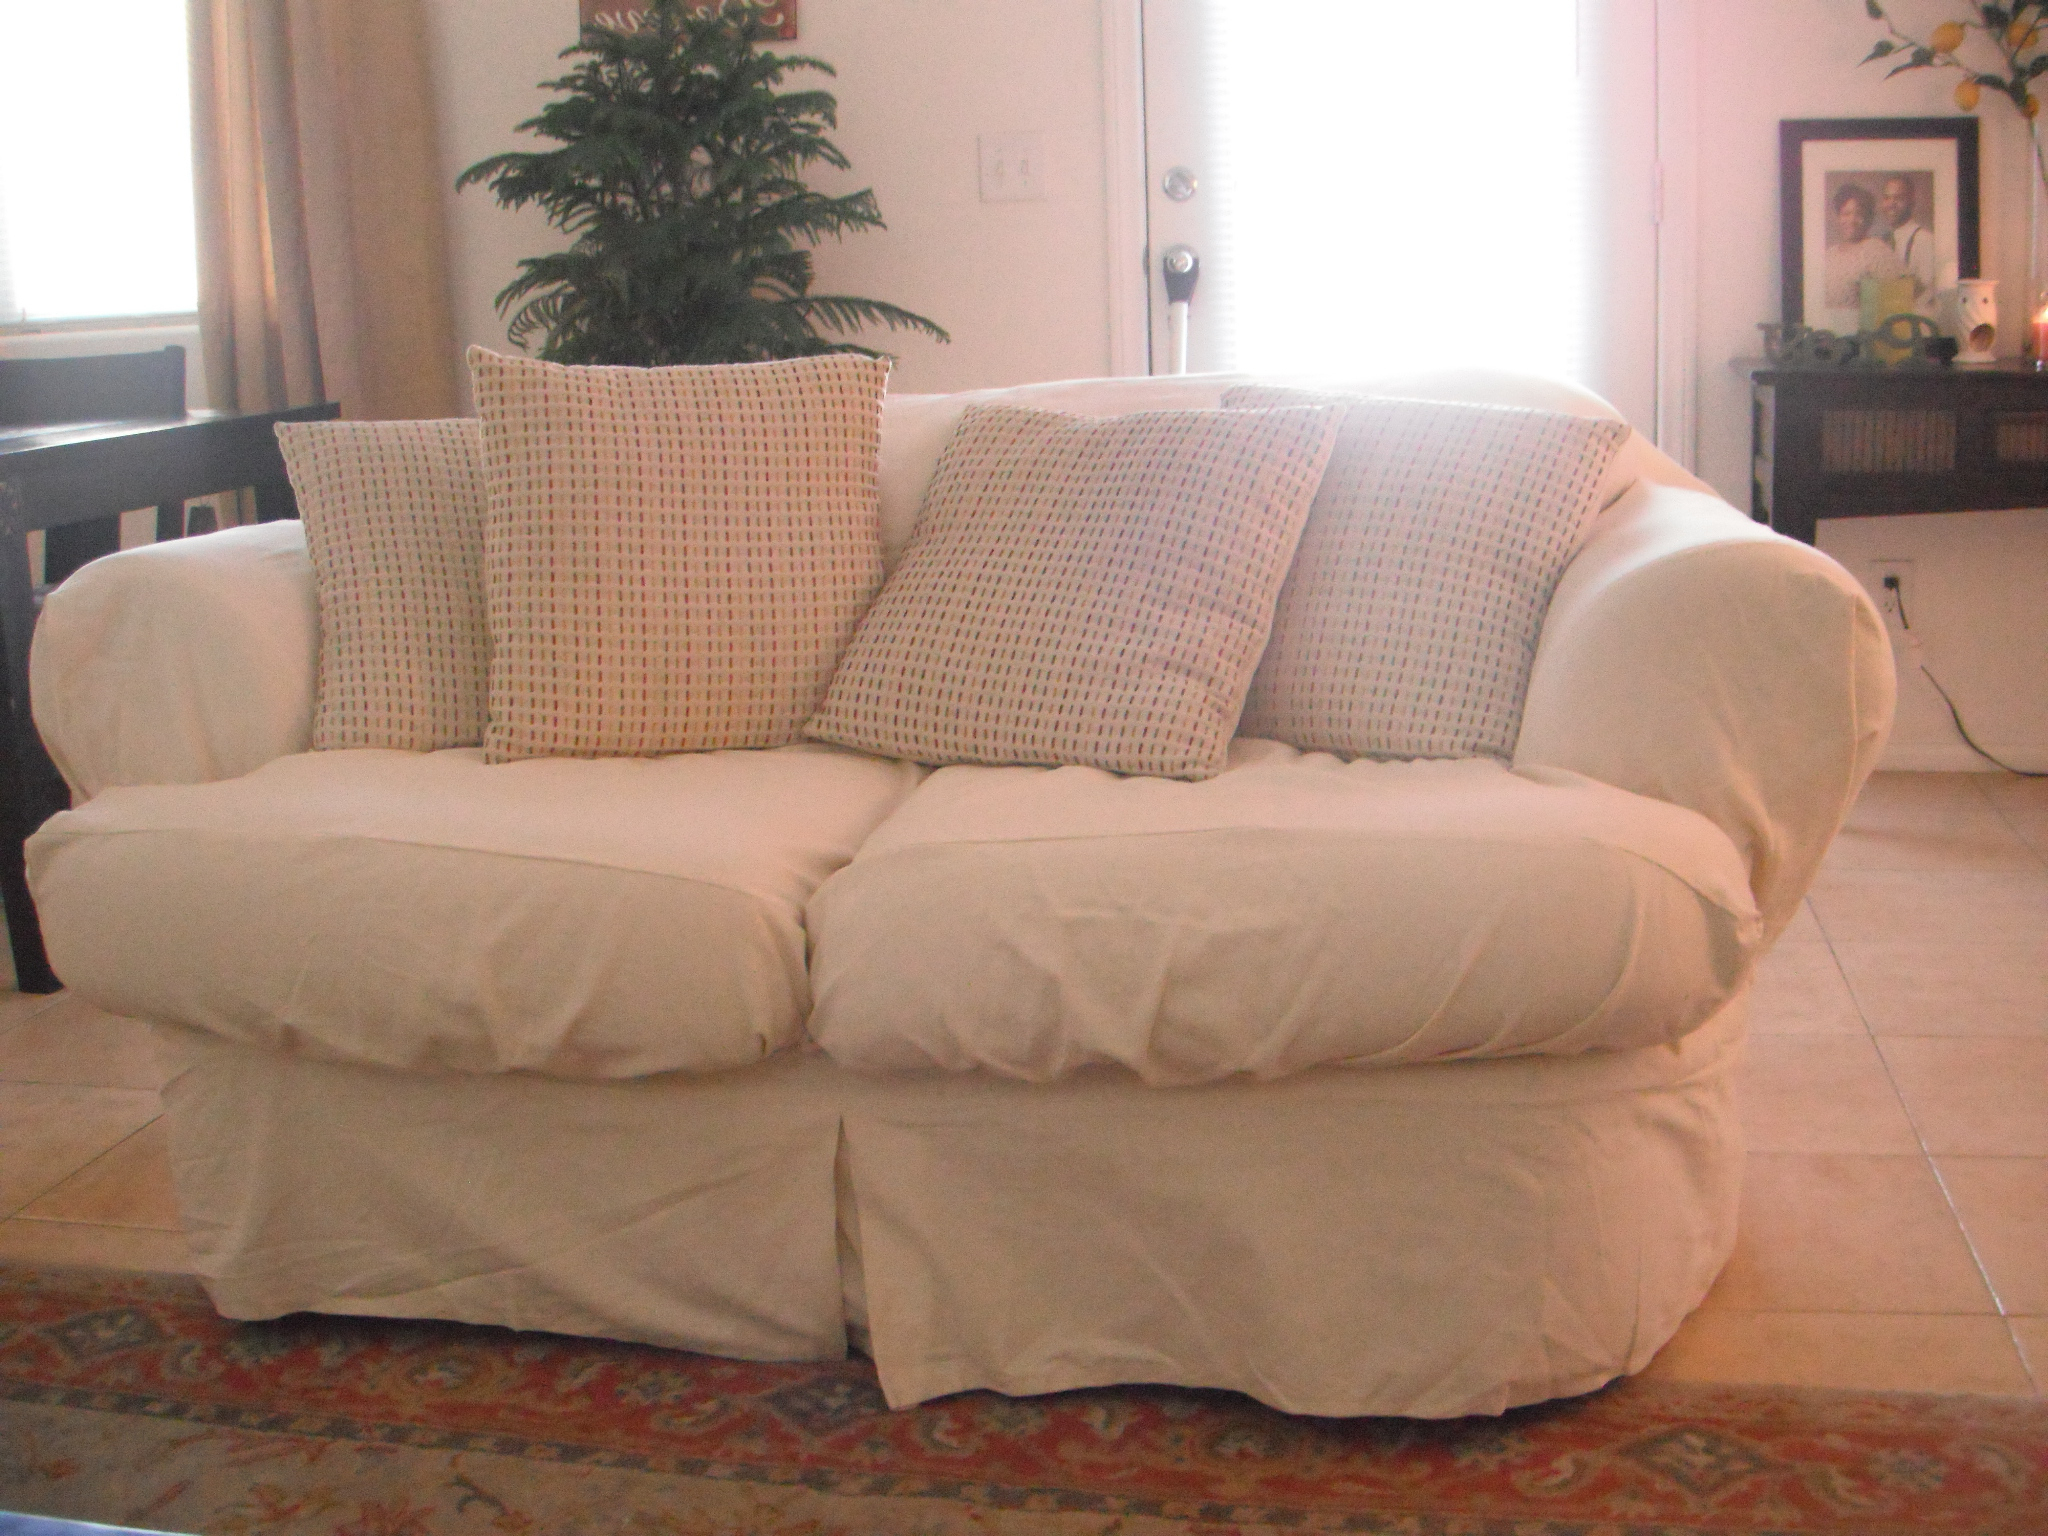 Well Known Slipcovers For Leather Couches Patio Chair How To Cover A Sofa With Within Sofa And Chair Slipcovers (View 13 of 20)